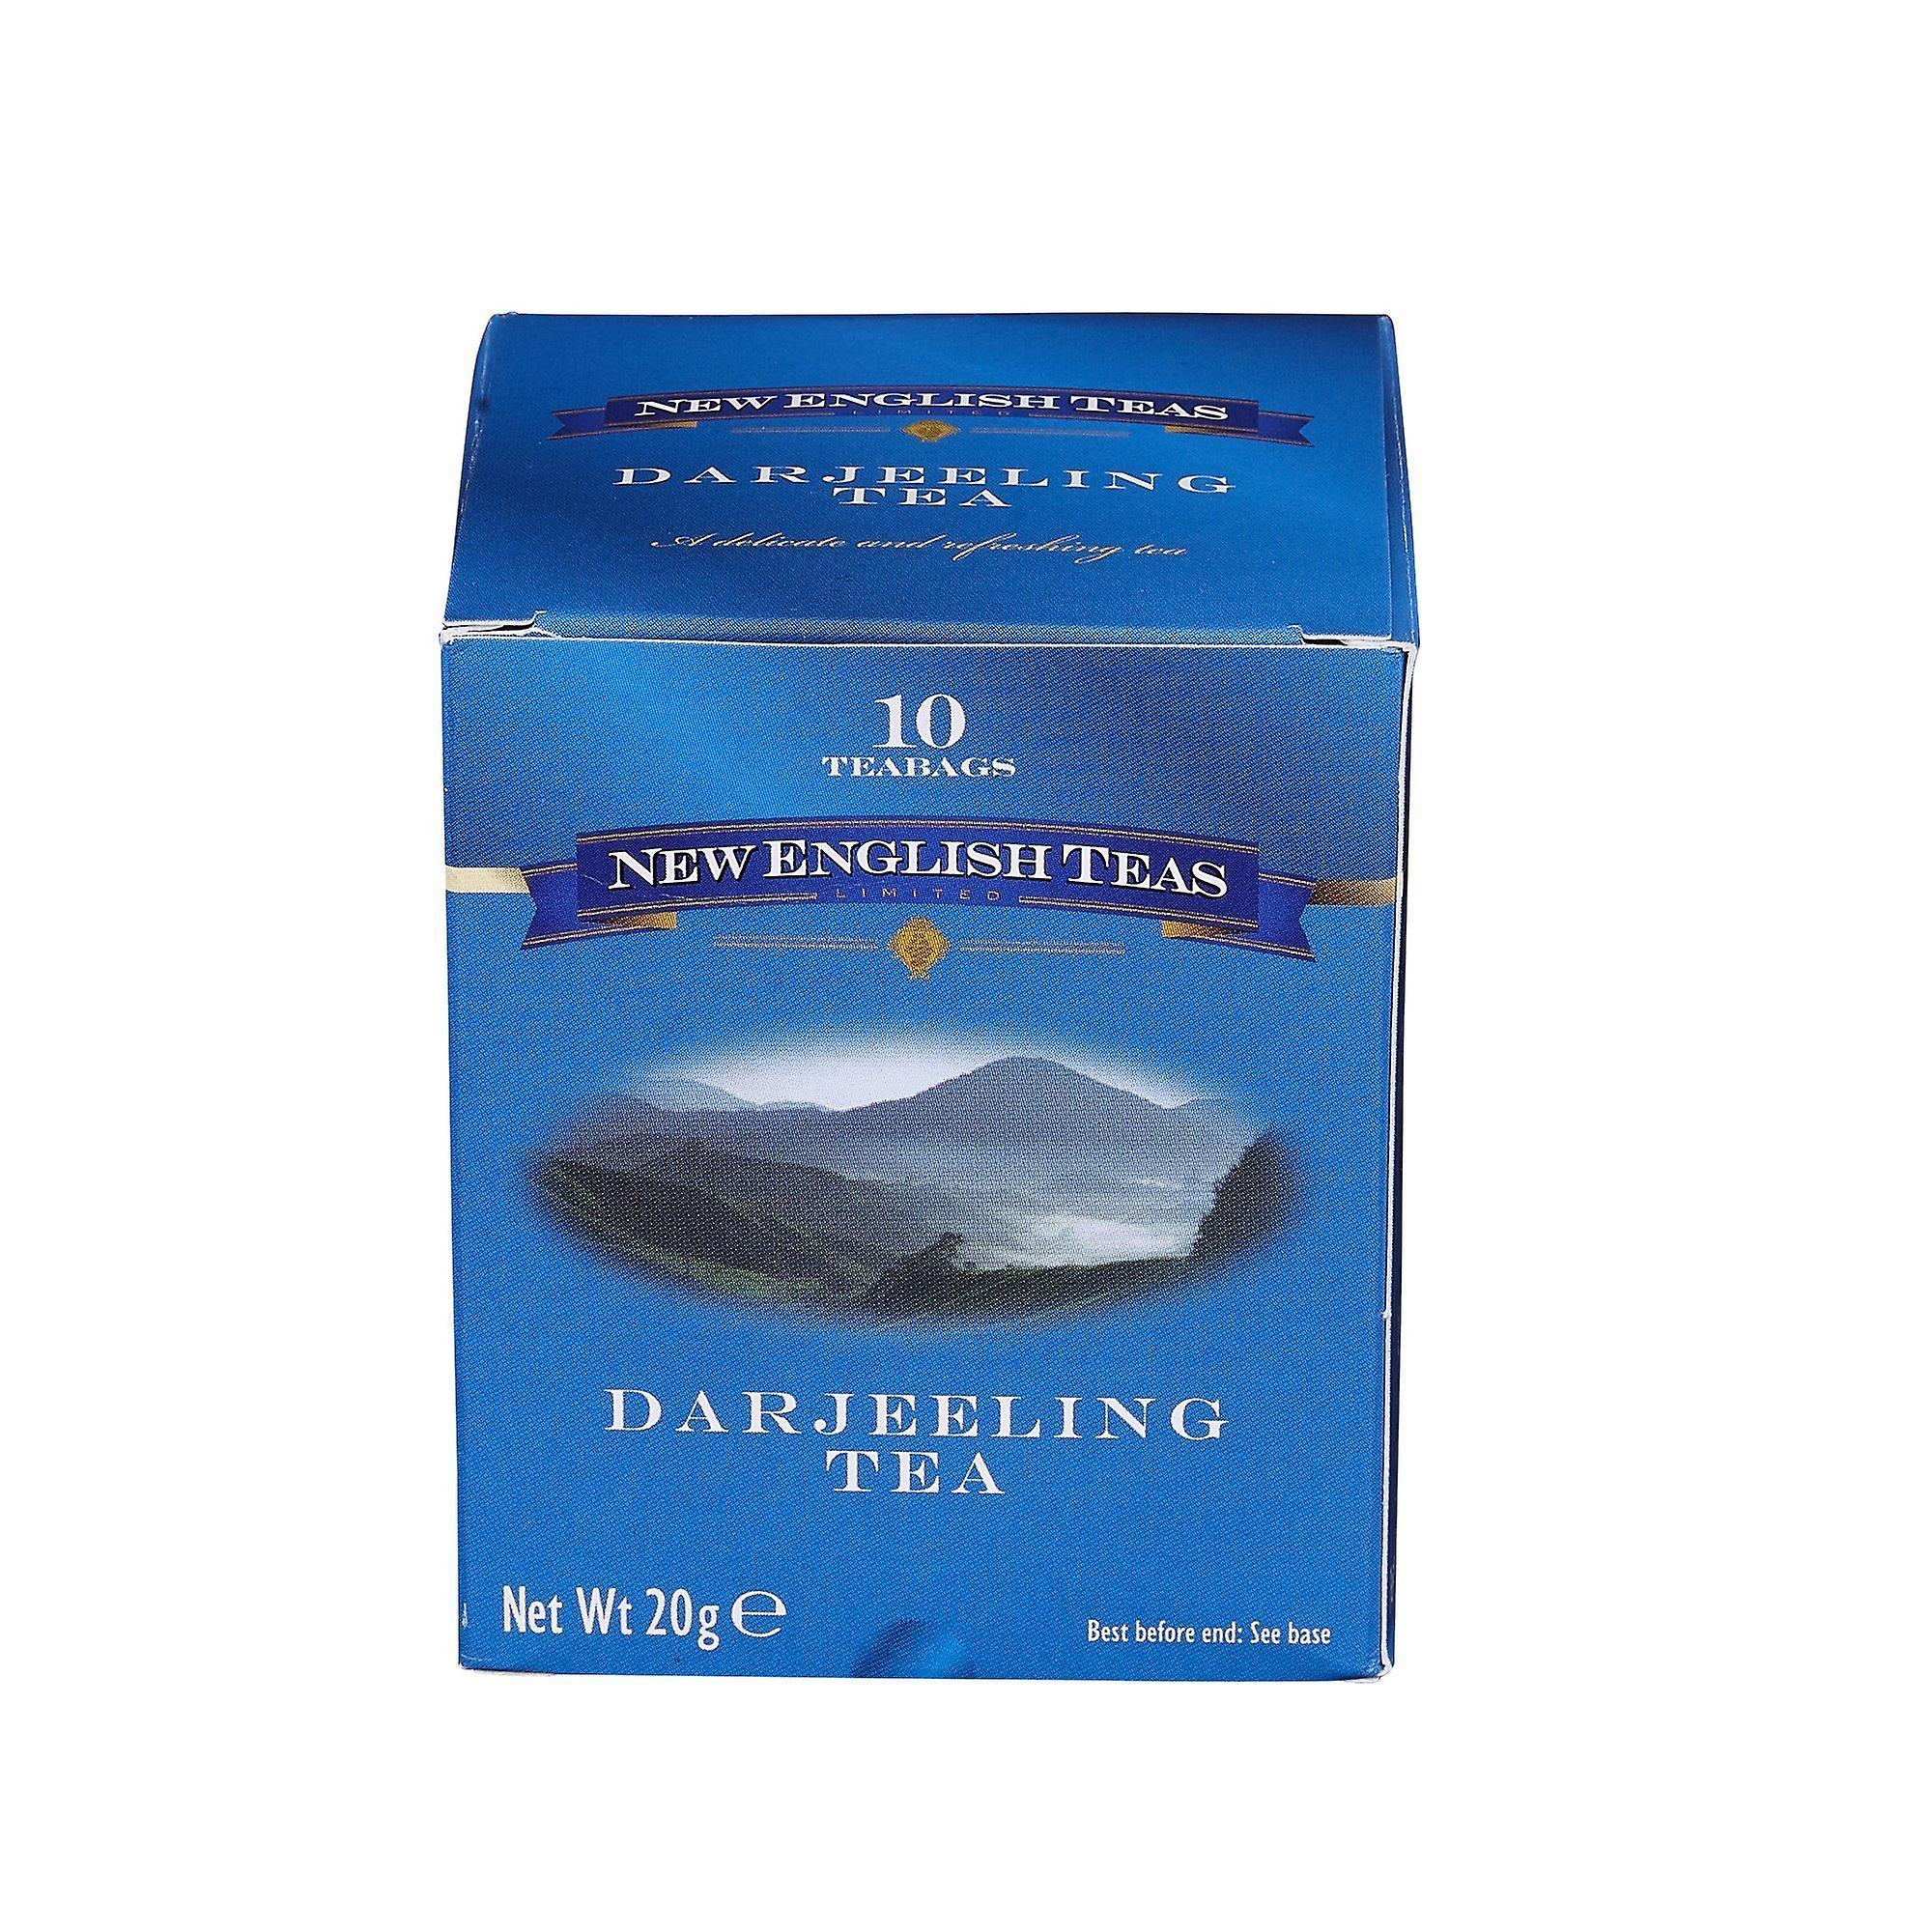 Classic darjeeling tea 10 individually wrapped teabags